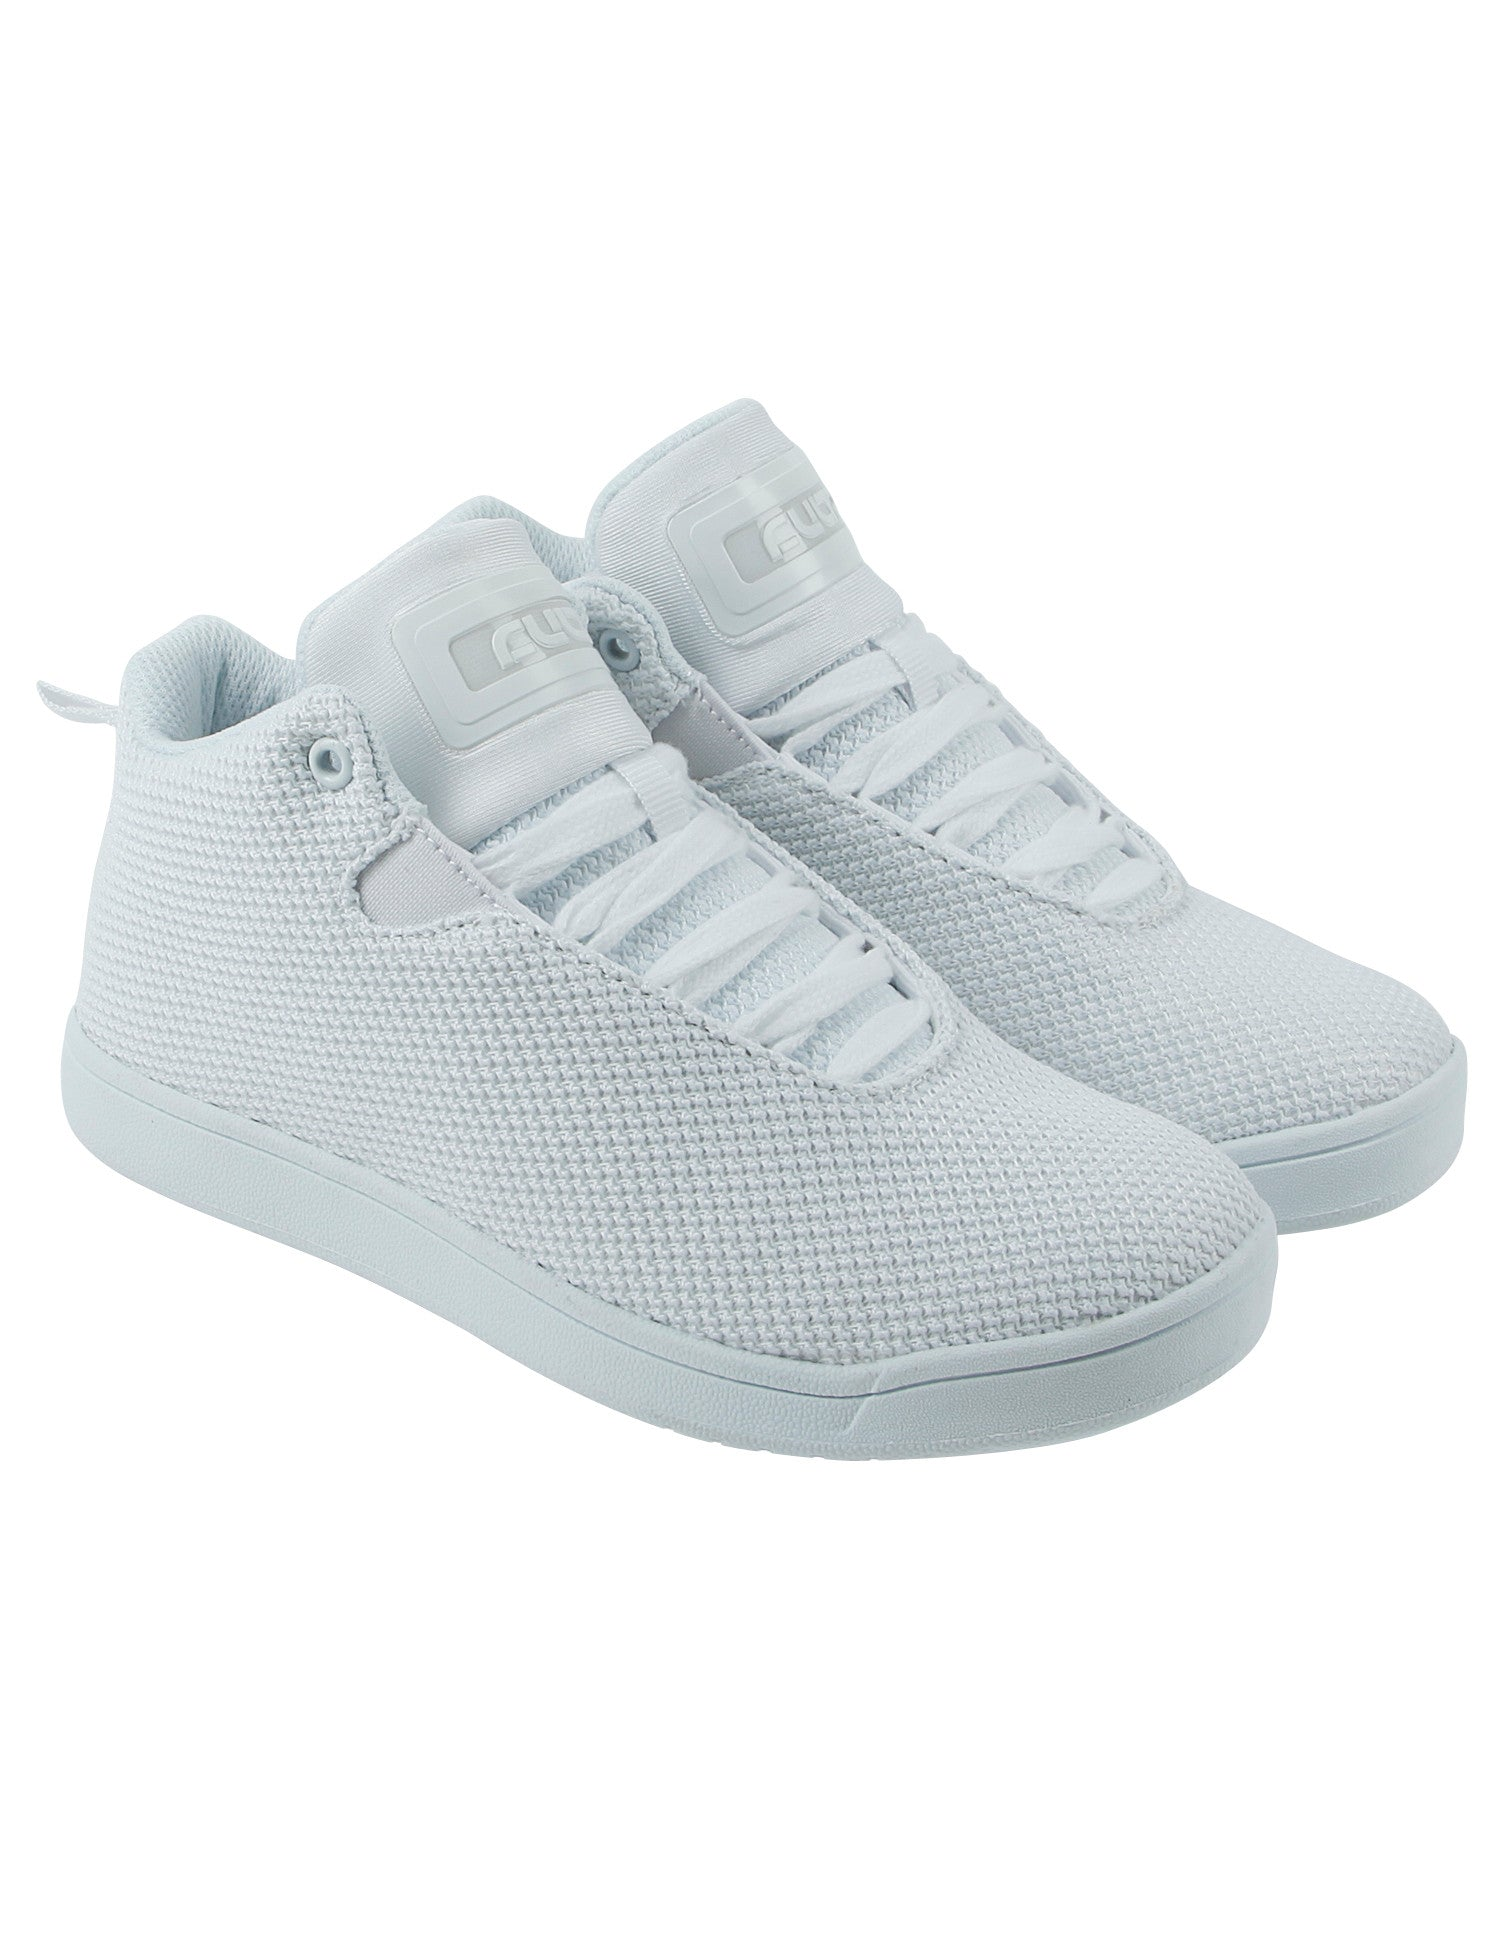 Cultz Mid Top Kids Shoes 150301-5W White